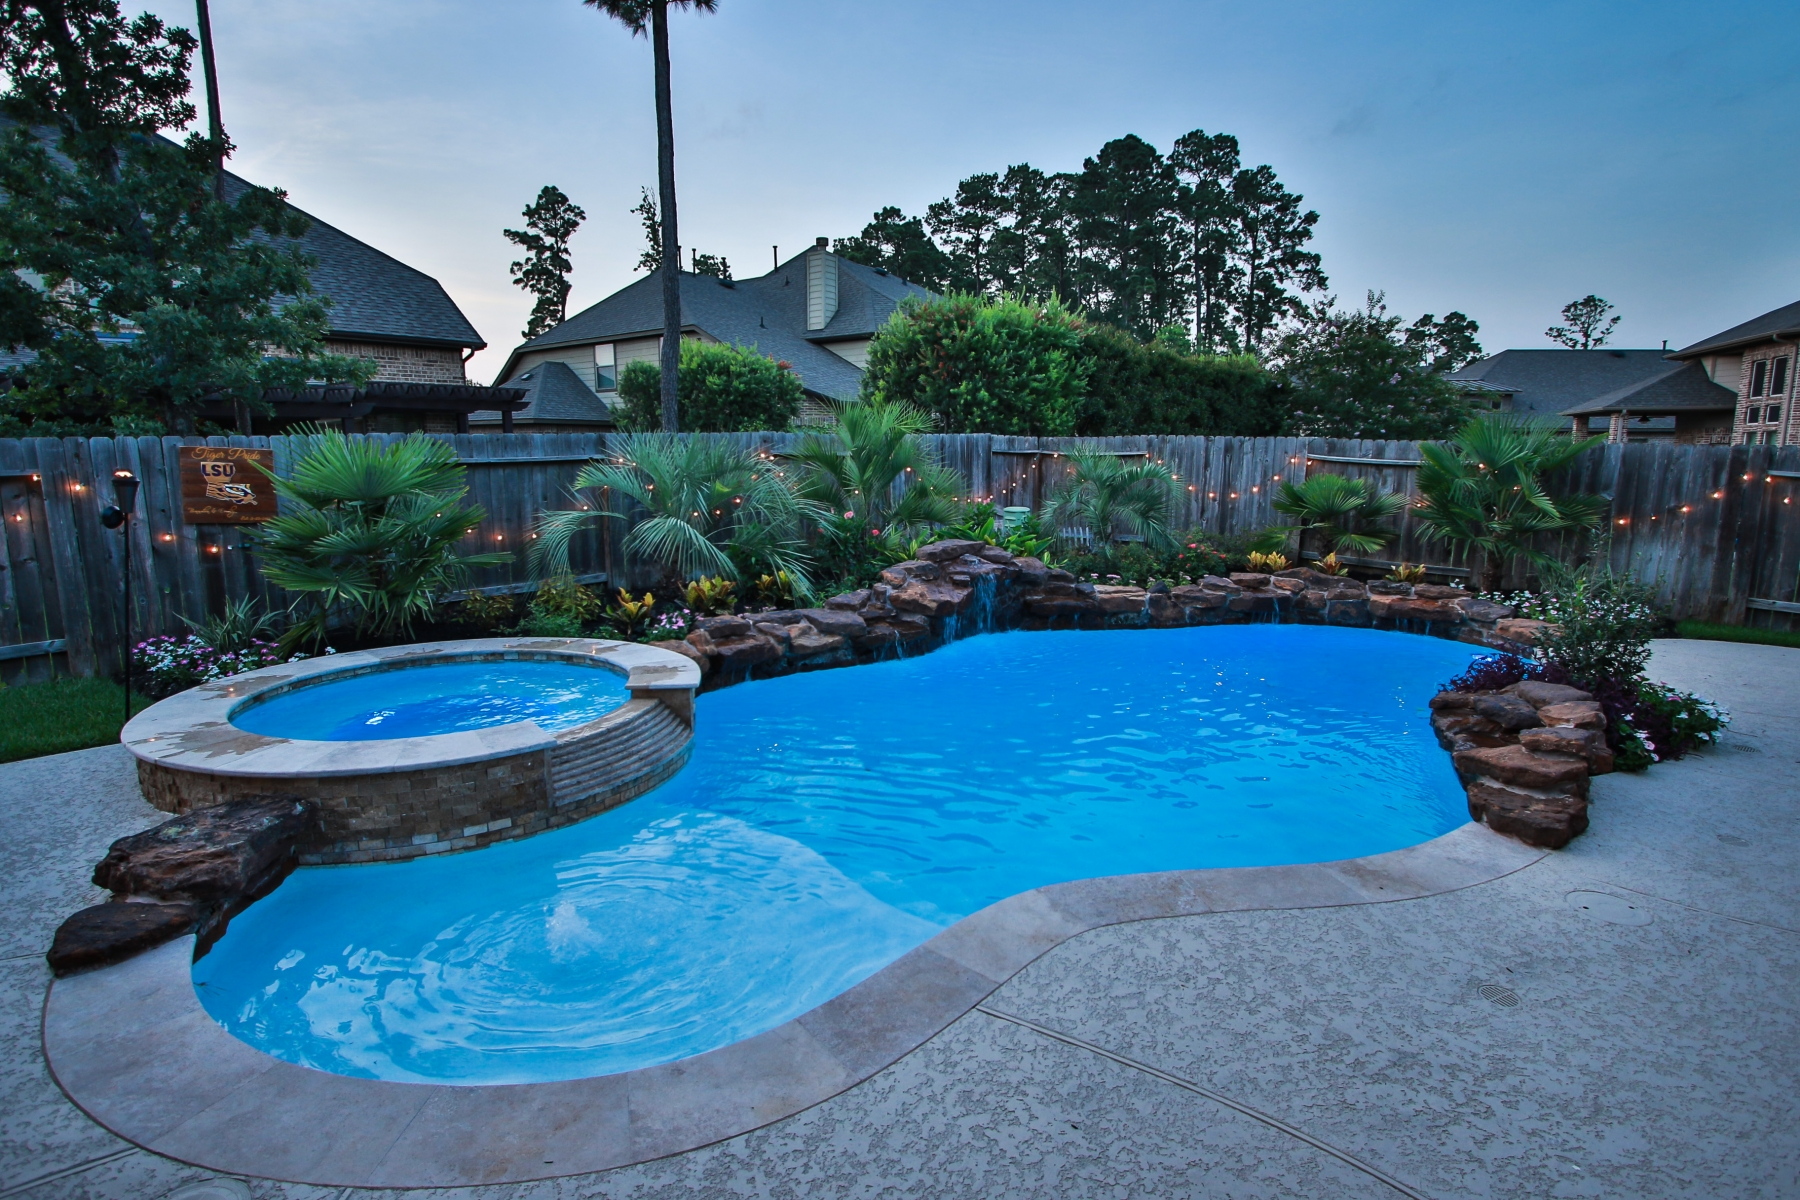 Freeform Pool, Spa, Tanning Ledge & Rock Waterfall